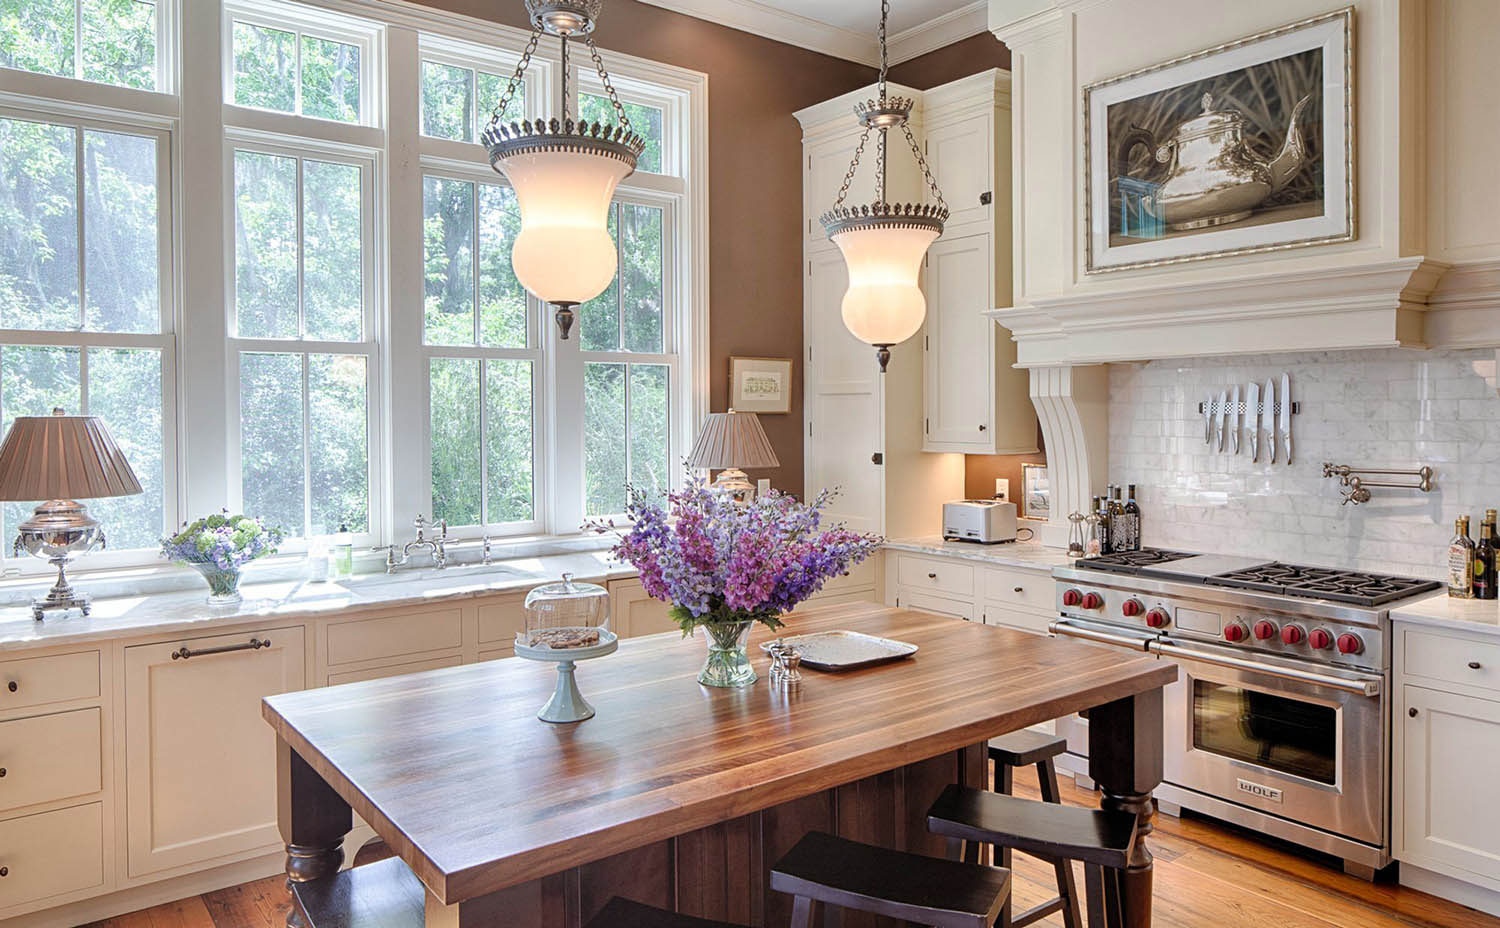 Beautiful cream colored kitchen with brown walls and marble backsplash. Wood floors with matching wood island and stools. Dark bronze hardware. Marble countertops.